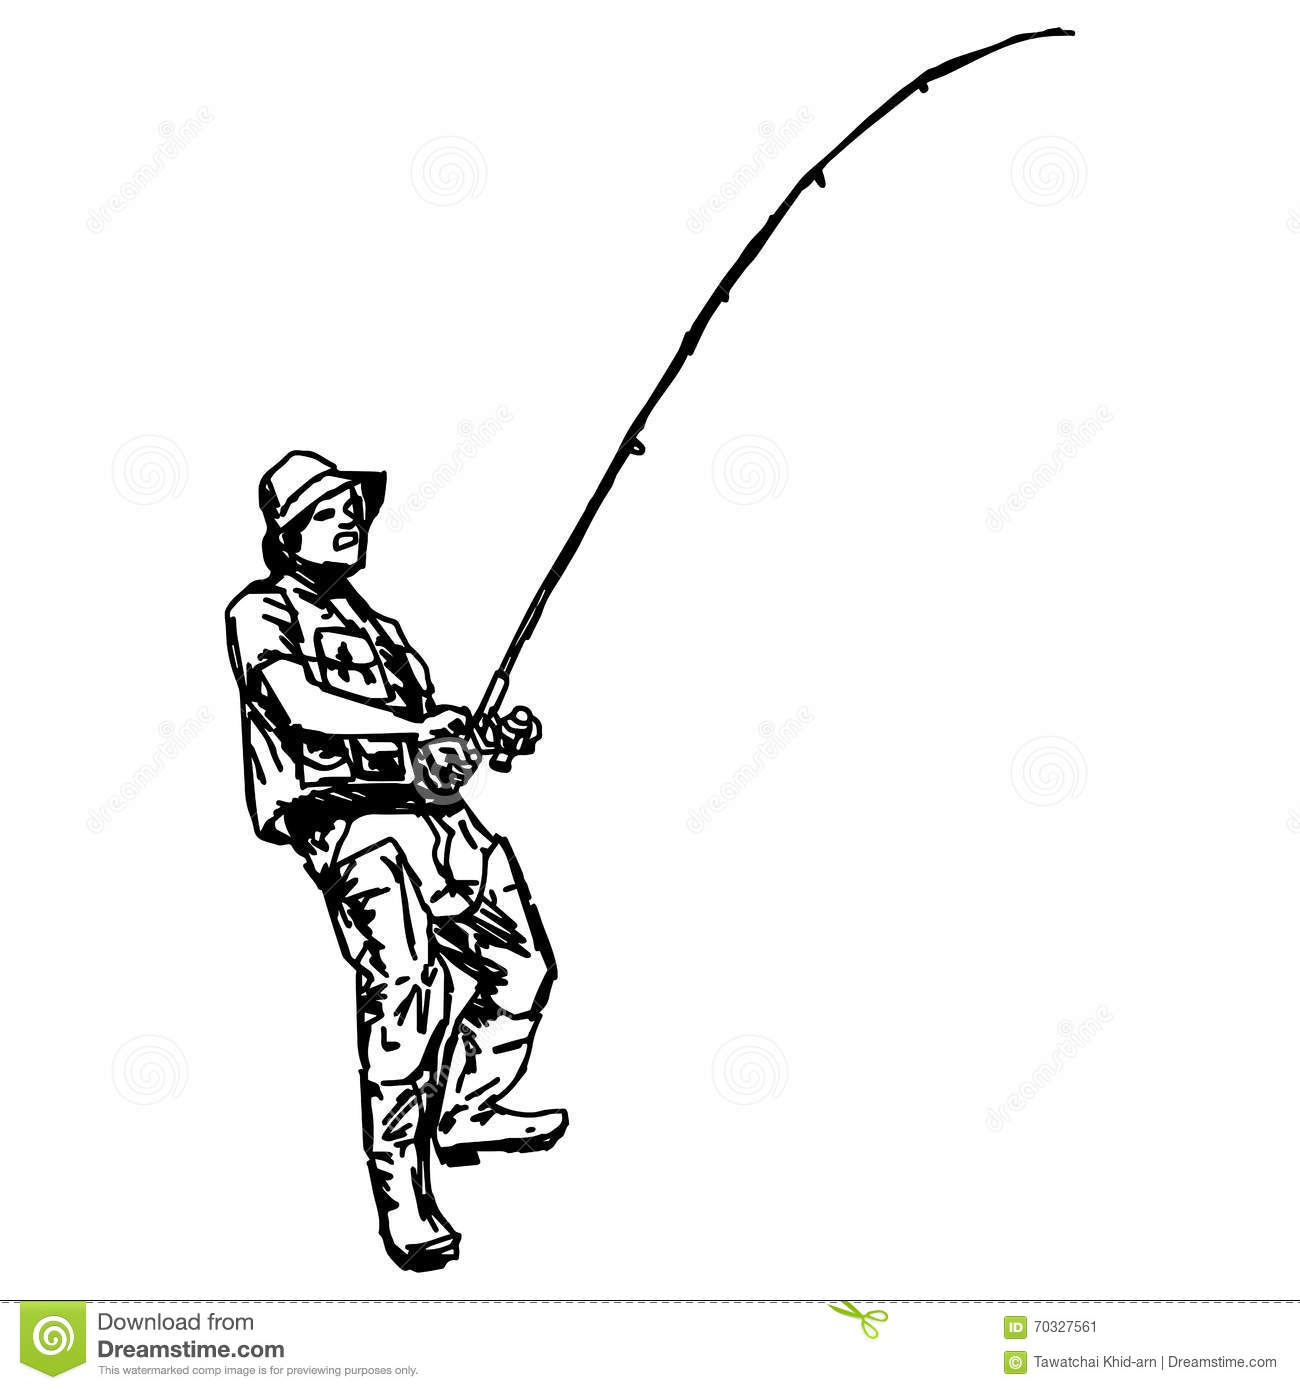 Illustration vector hand draw doodles of fisherman stock for Wyoming game and fish draw results